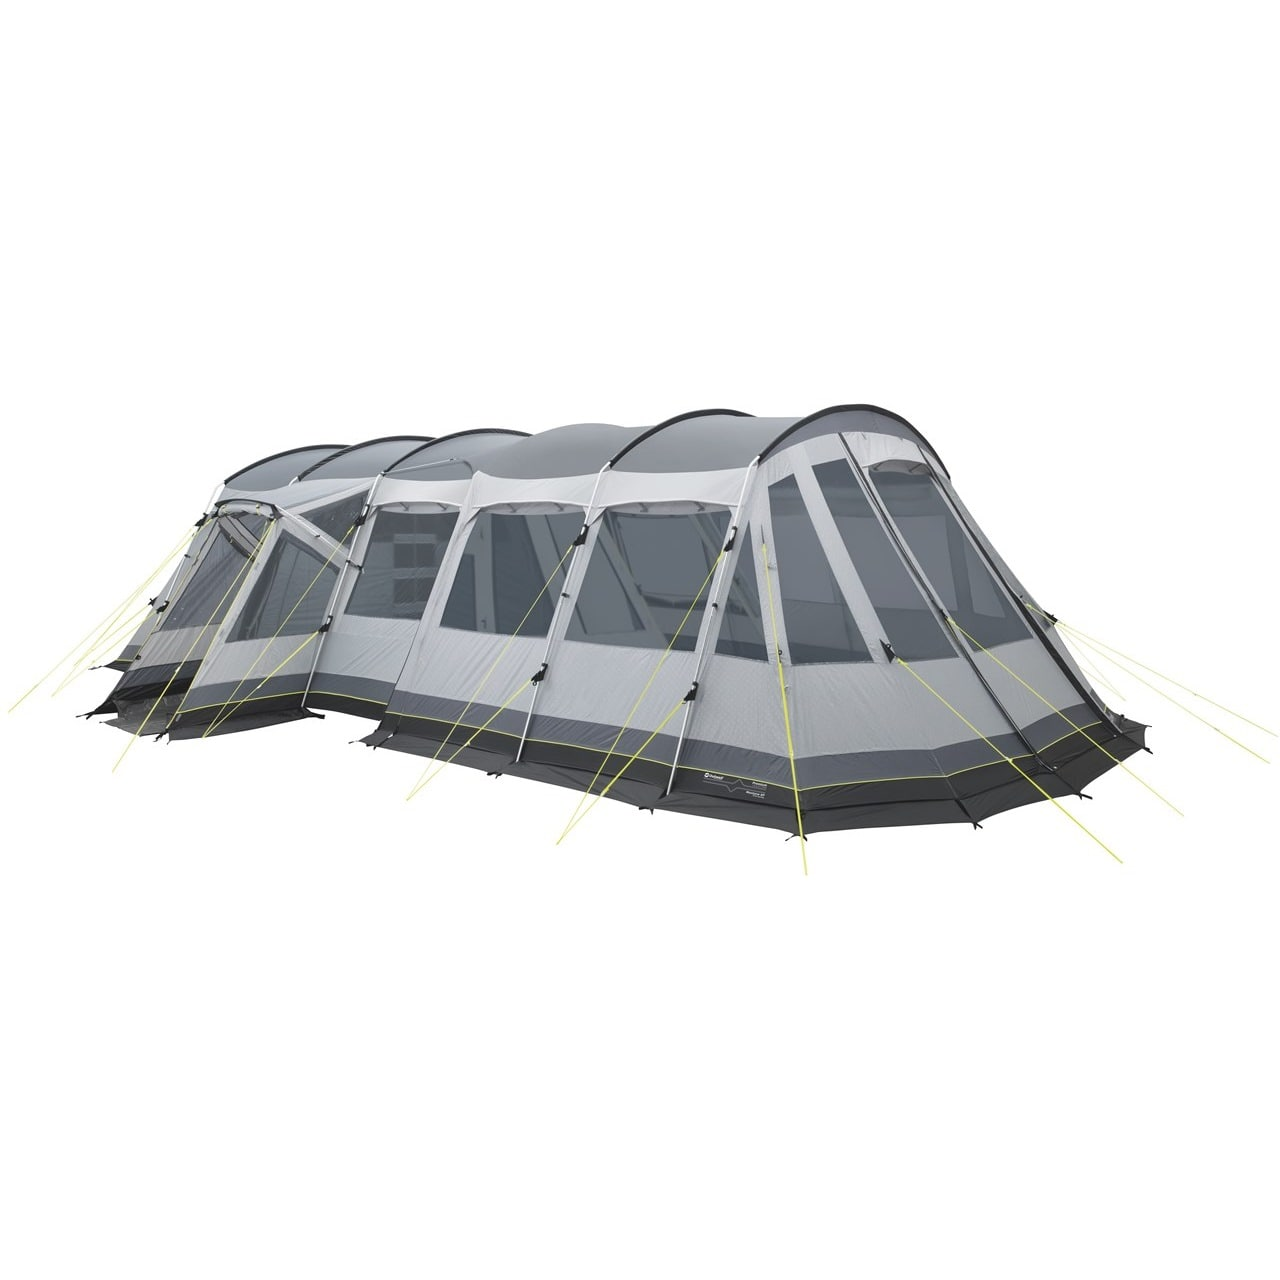 Kj 248 P Outwell Montana 5p Front Awning Fra Outnorth